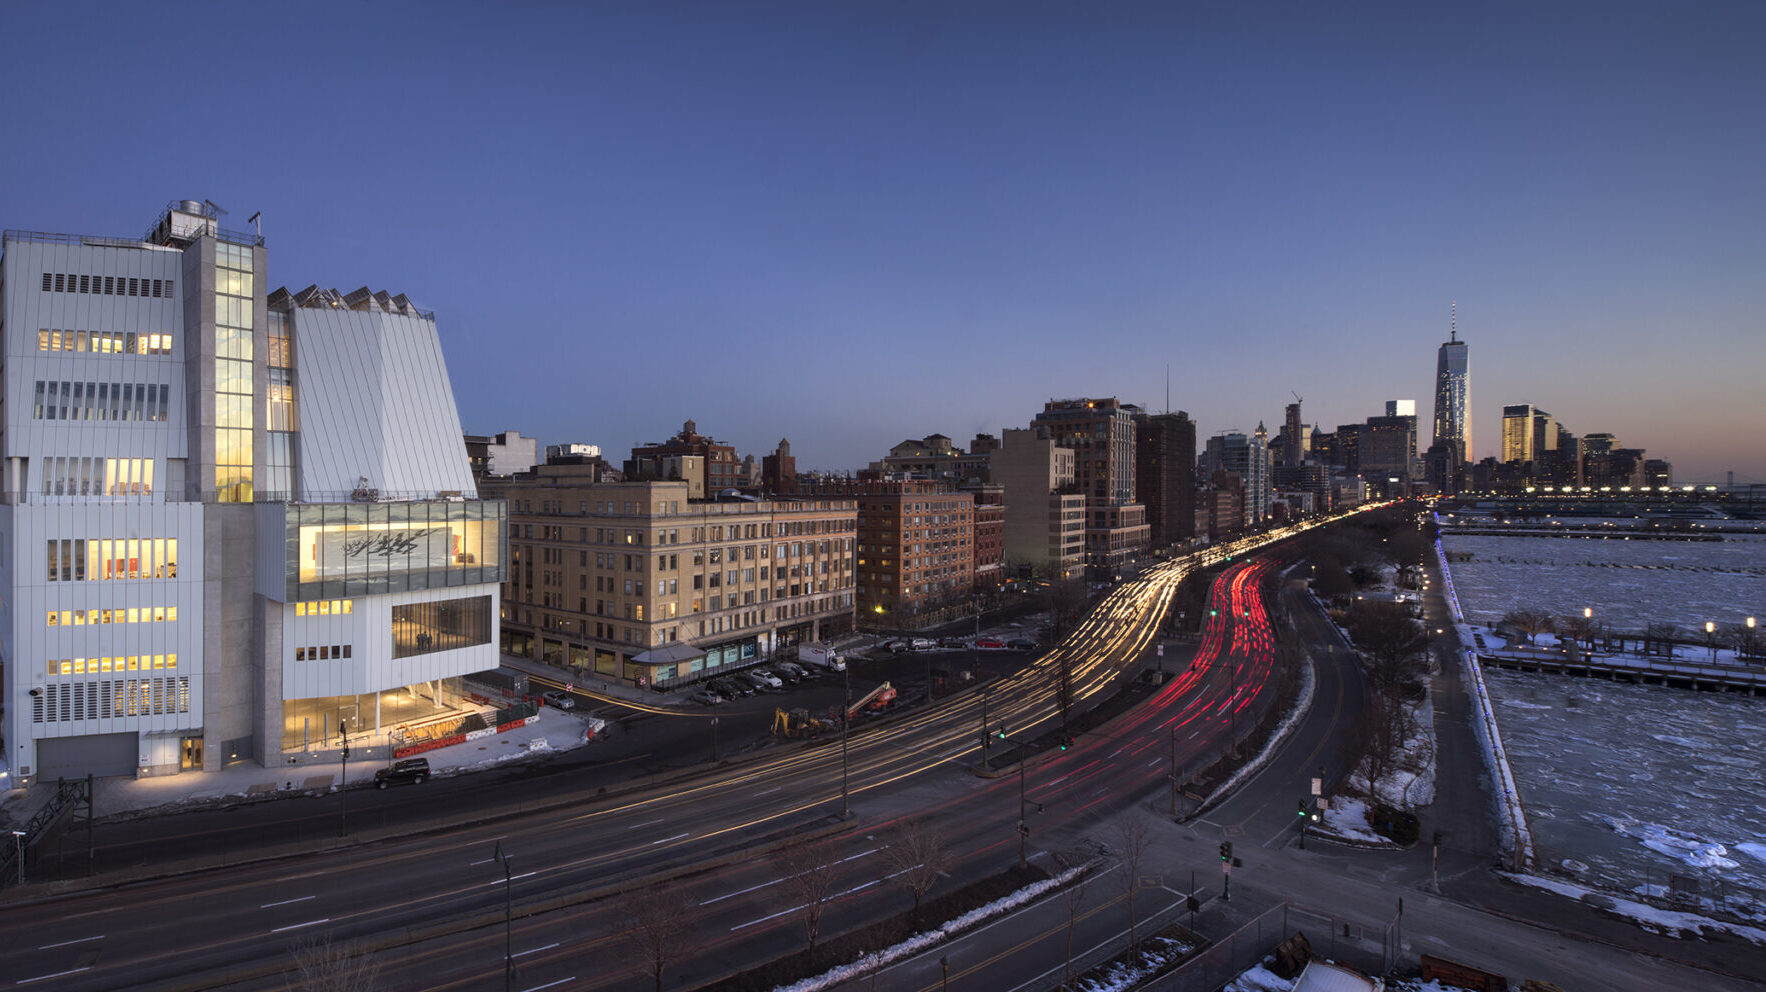 An exterior of the Whitney Museum building at sunset, with a view of the Hudson River nearby